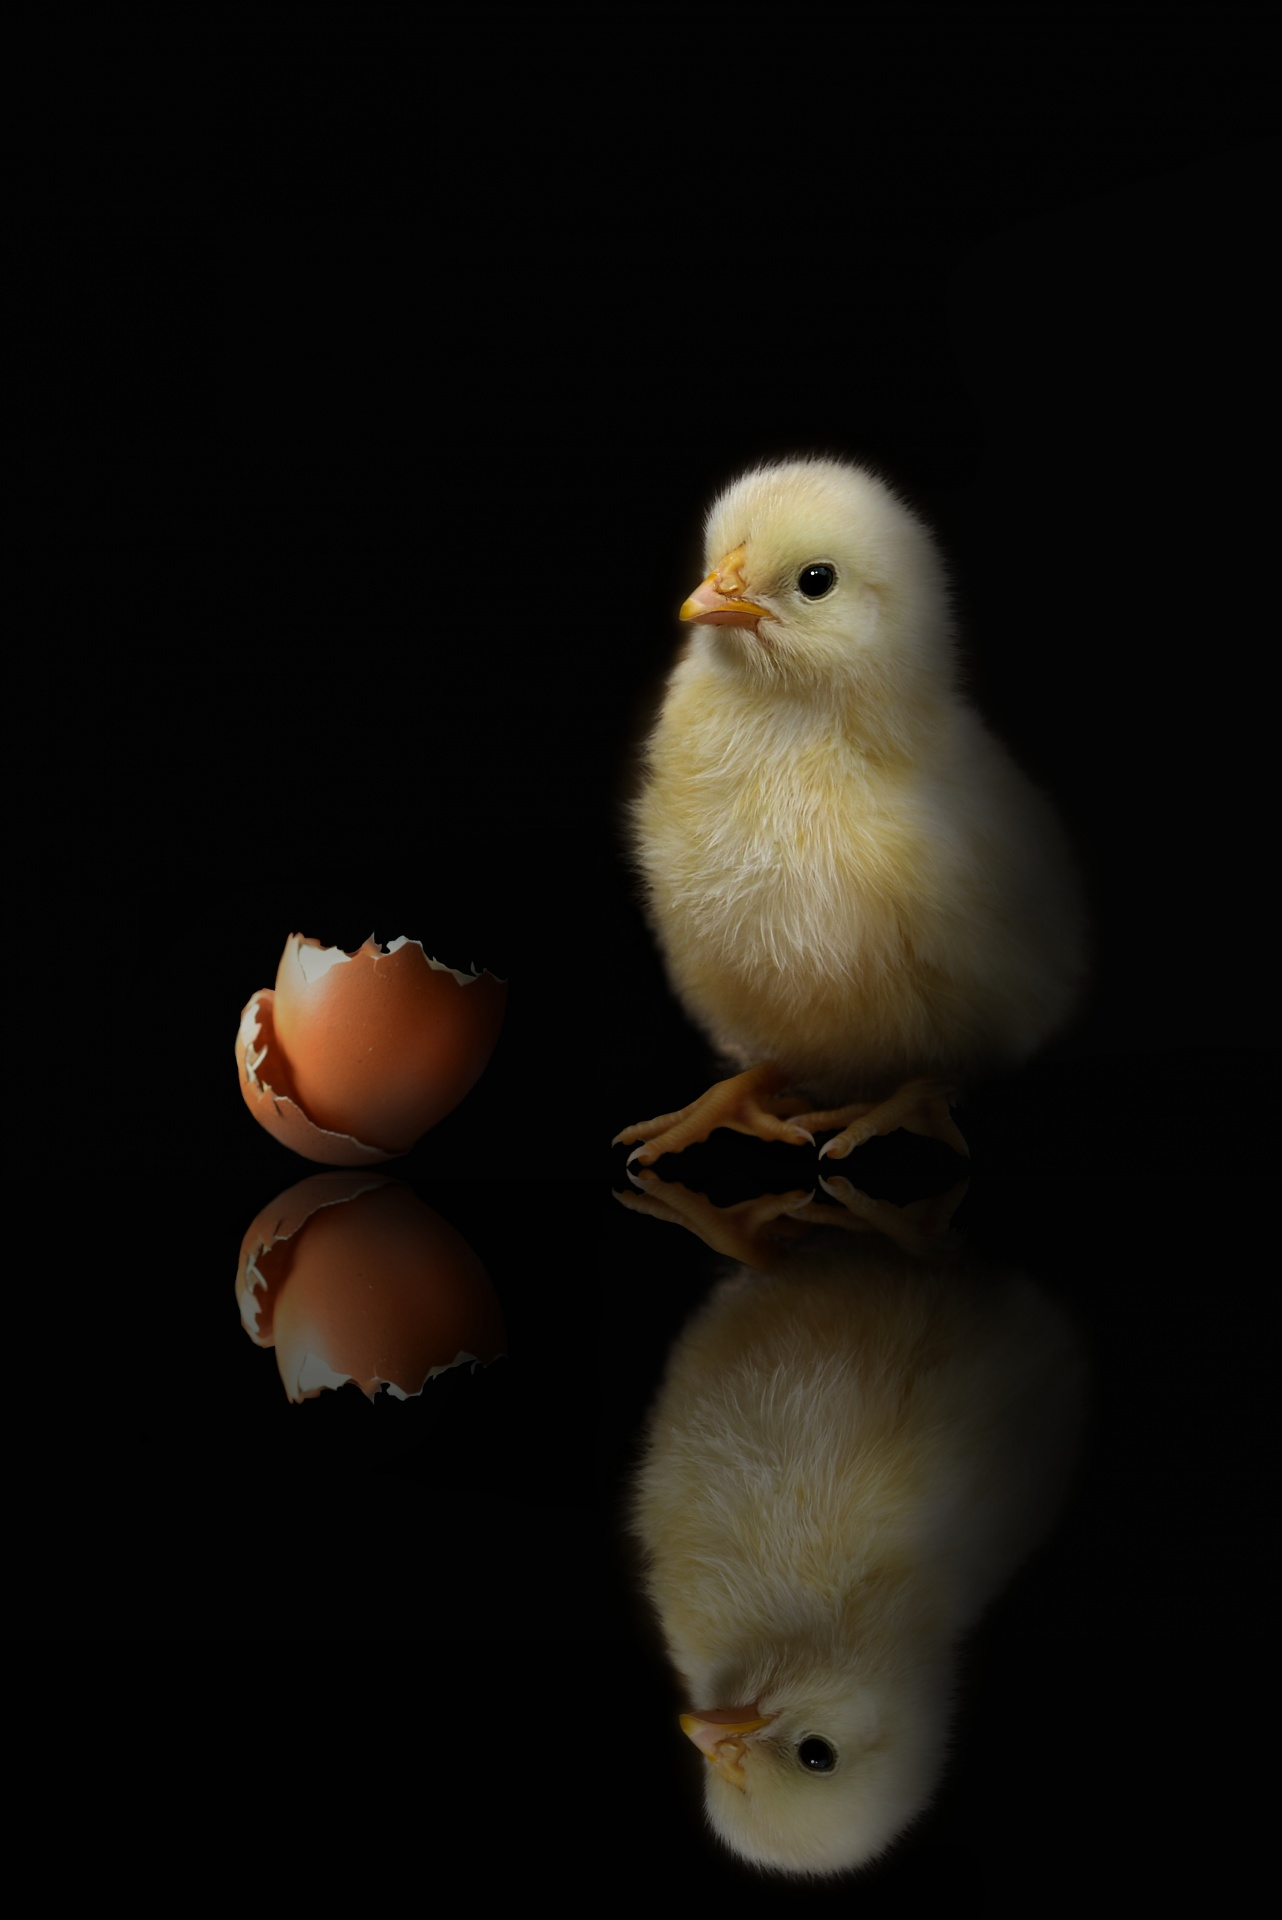 Baby Newborn Chick And Shell, Black Background Free Stock Photo